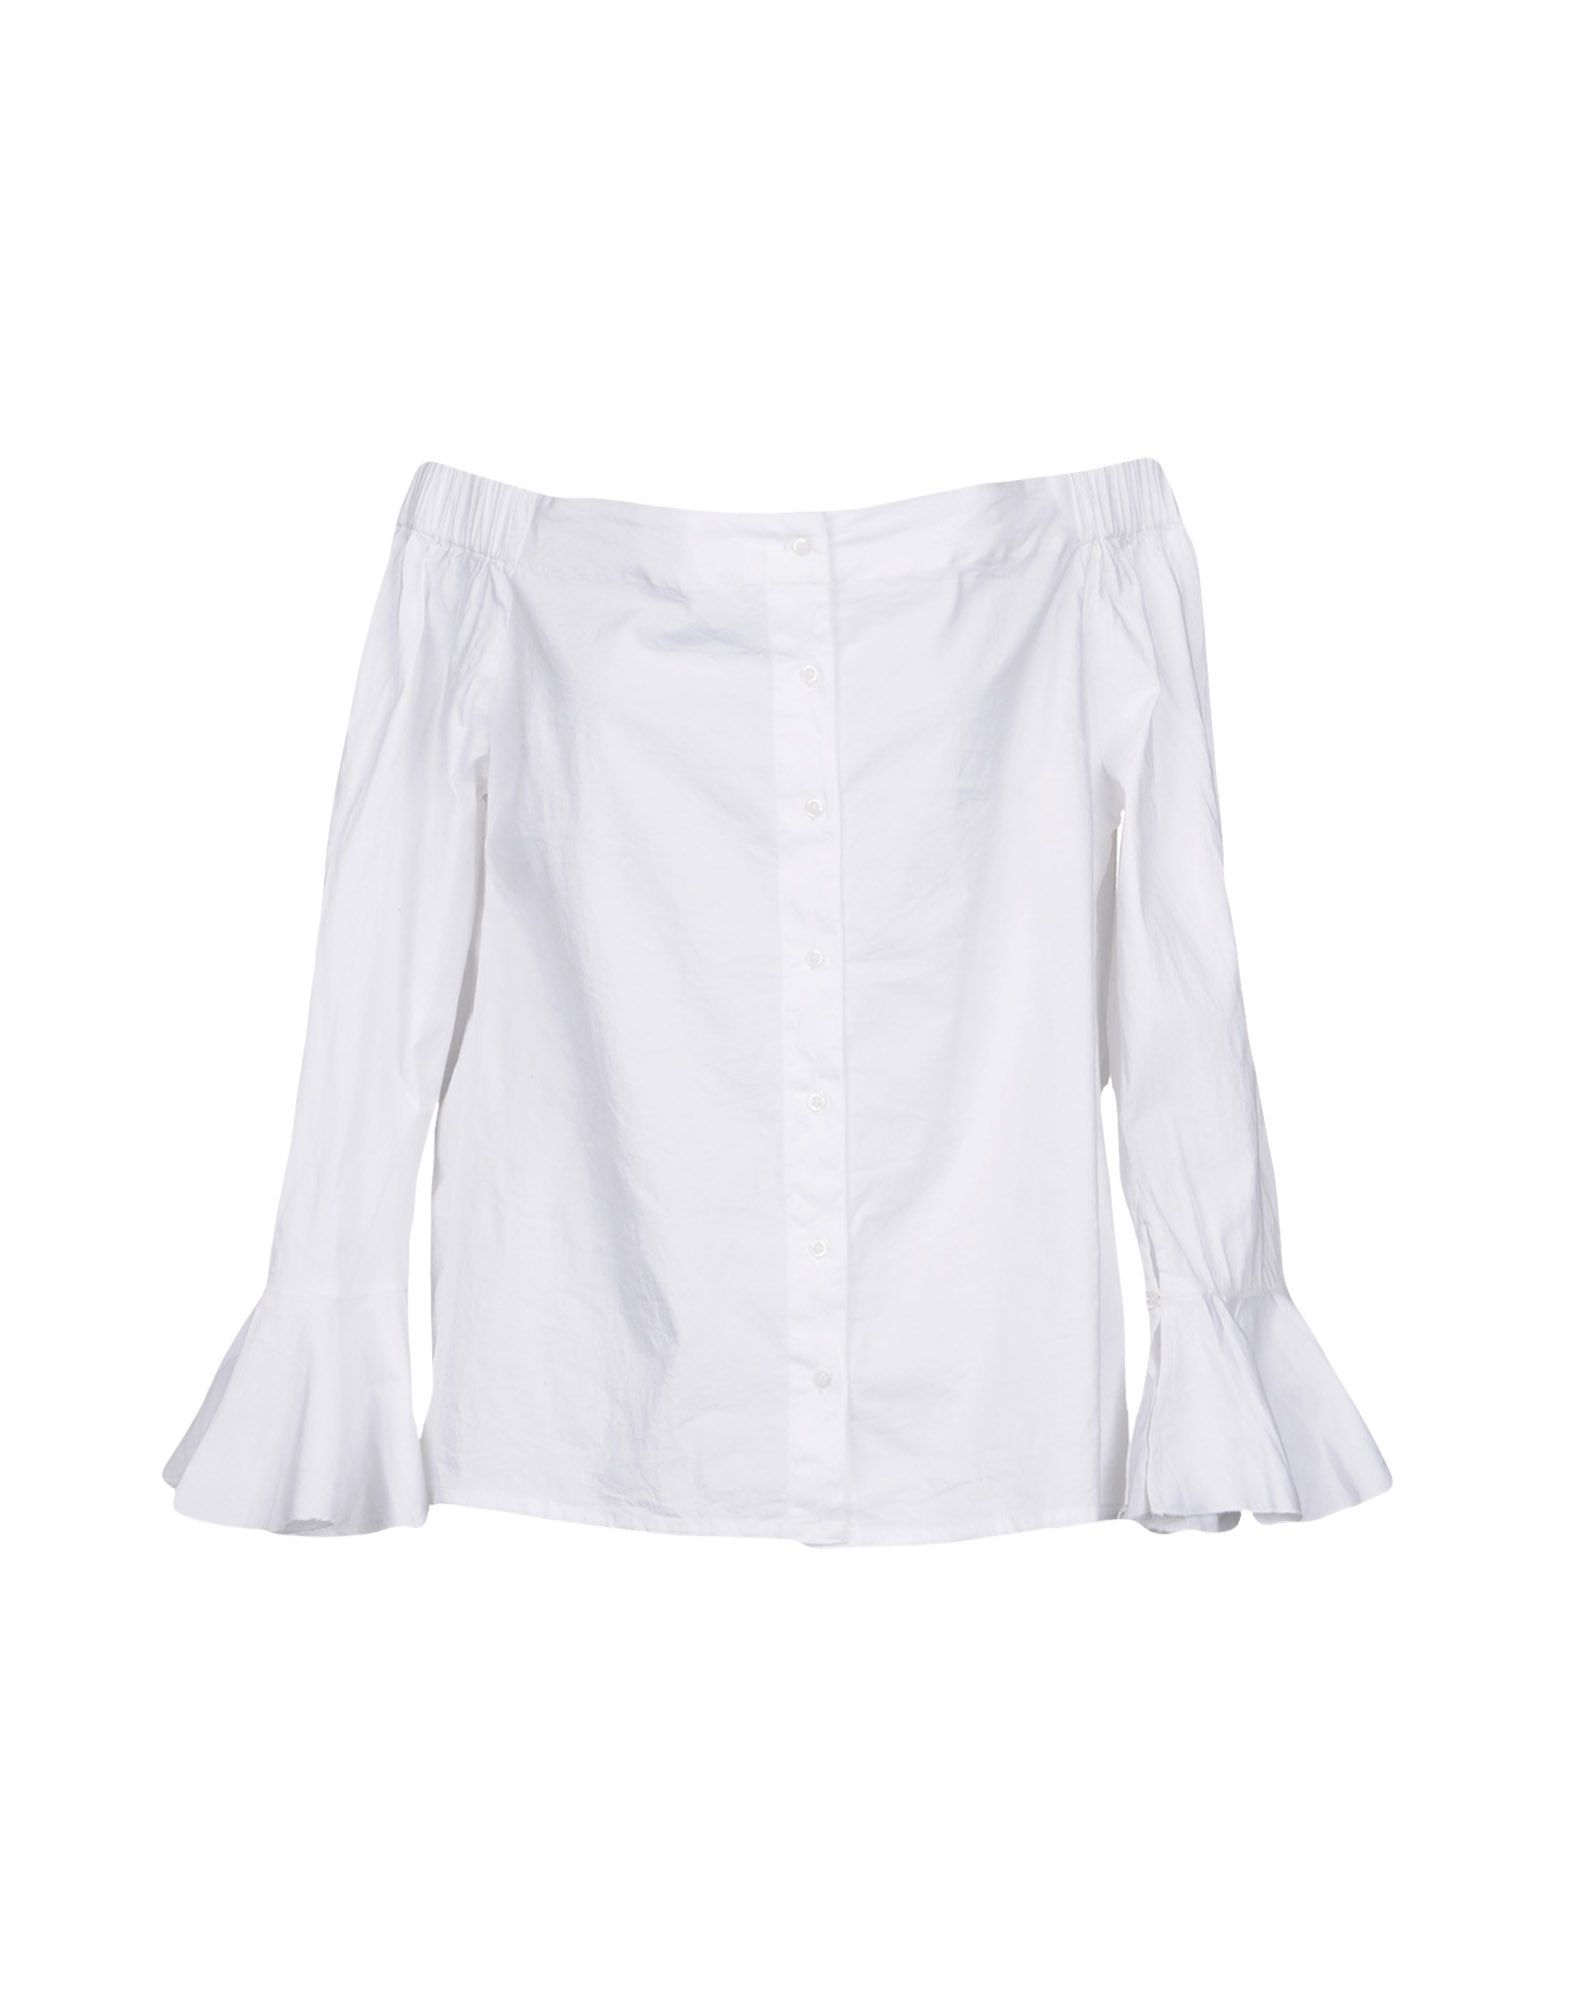 WALTER BAKER Solid Color Shirts & Blouses in White